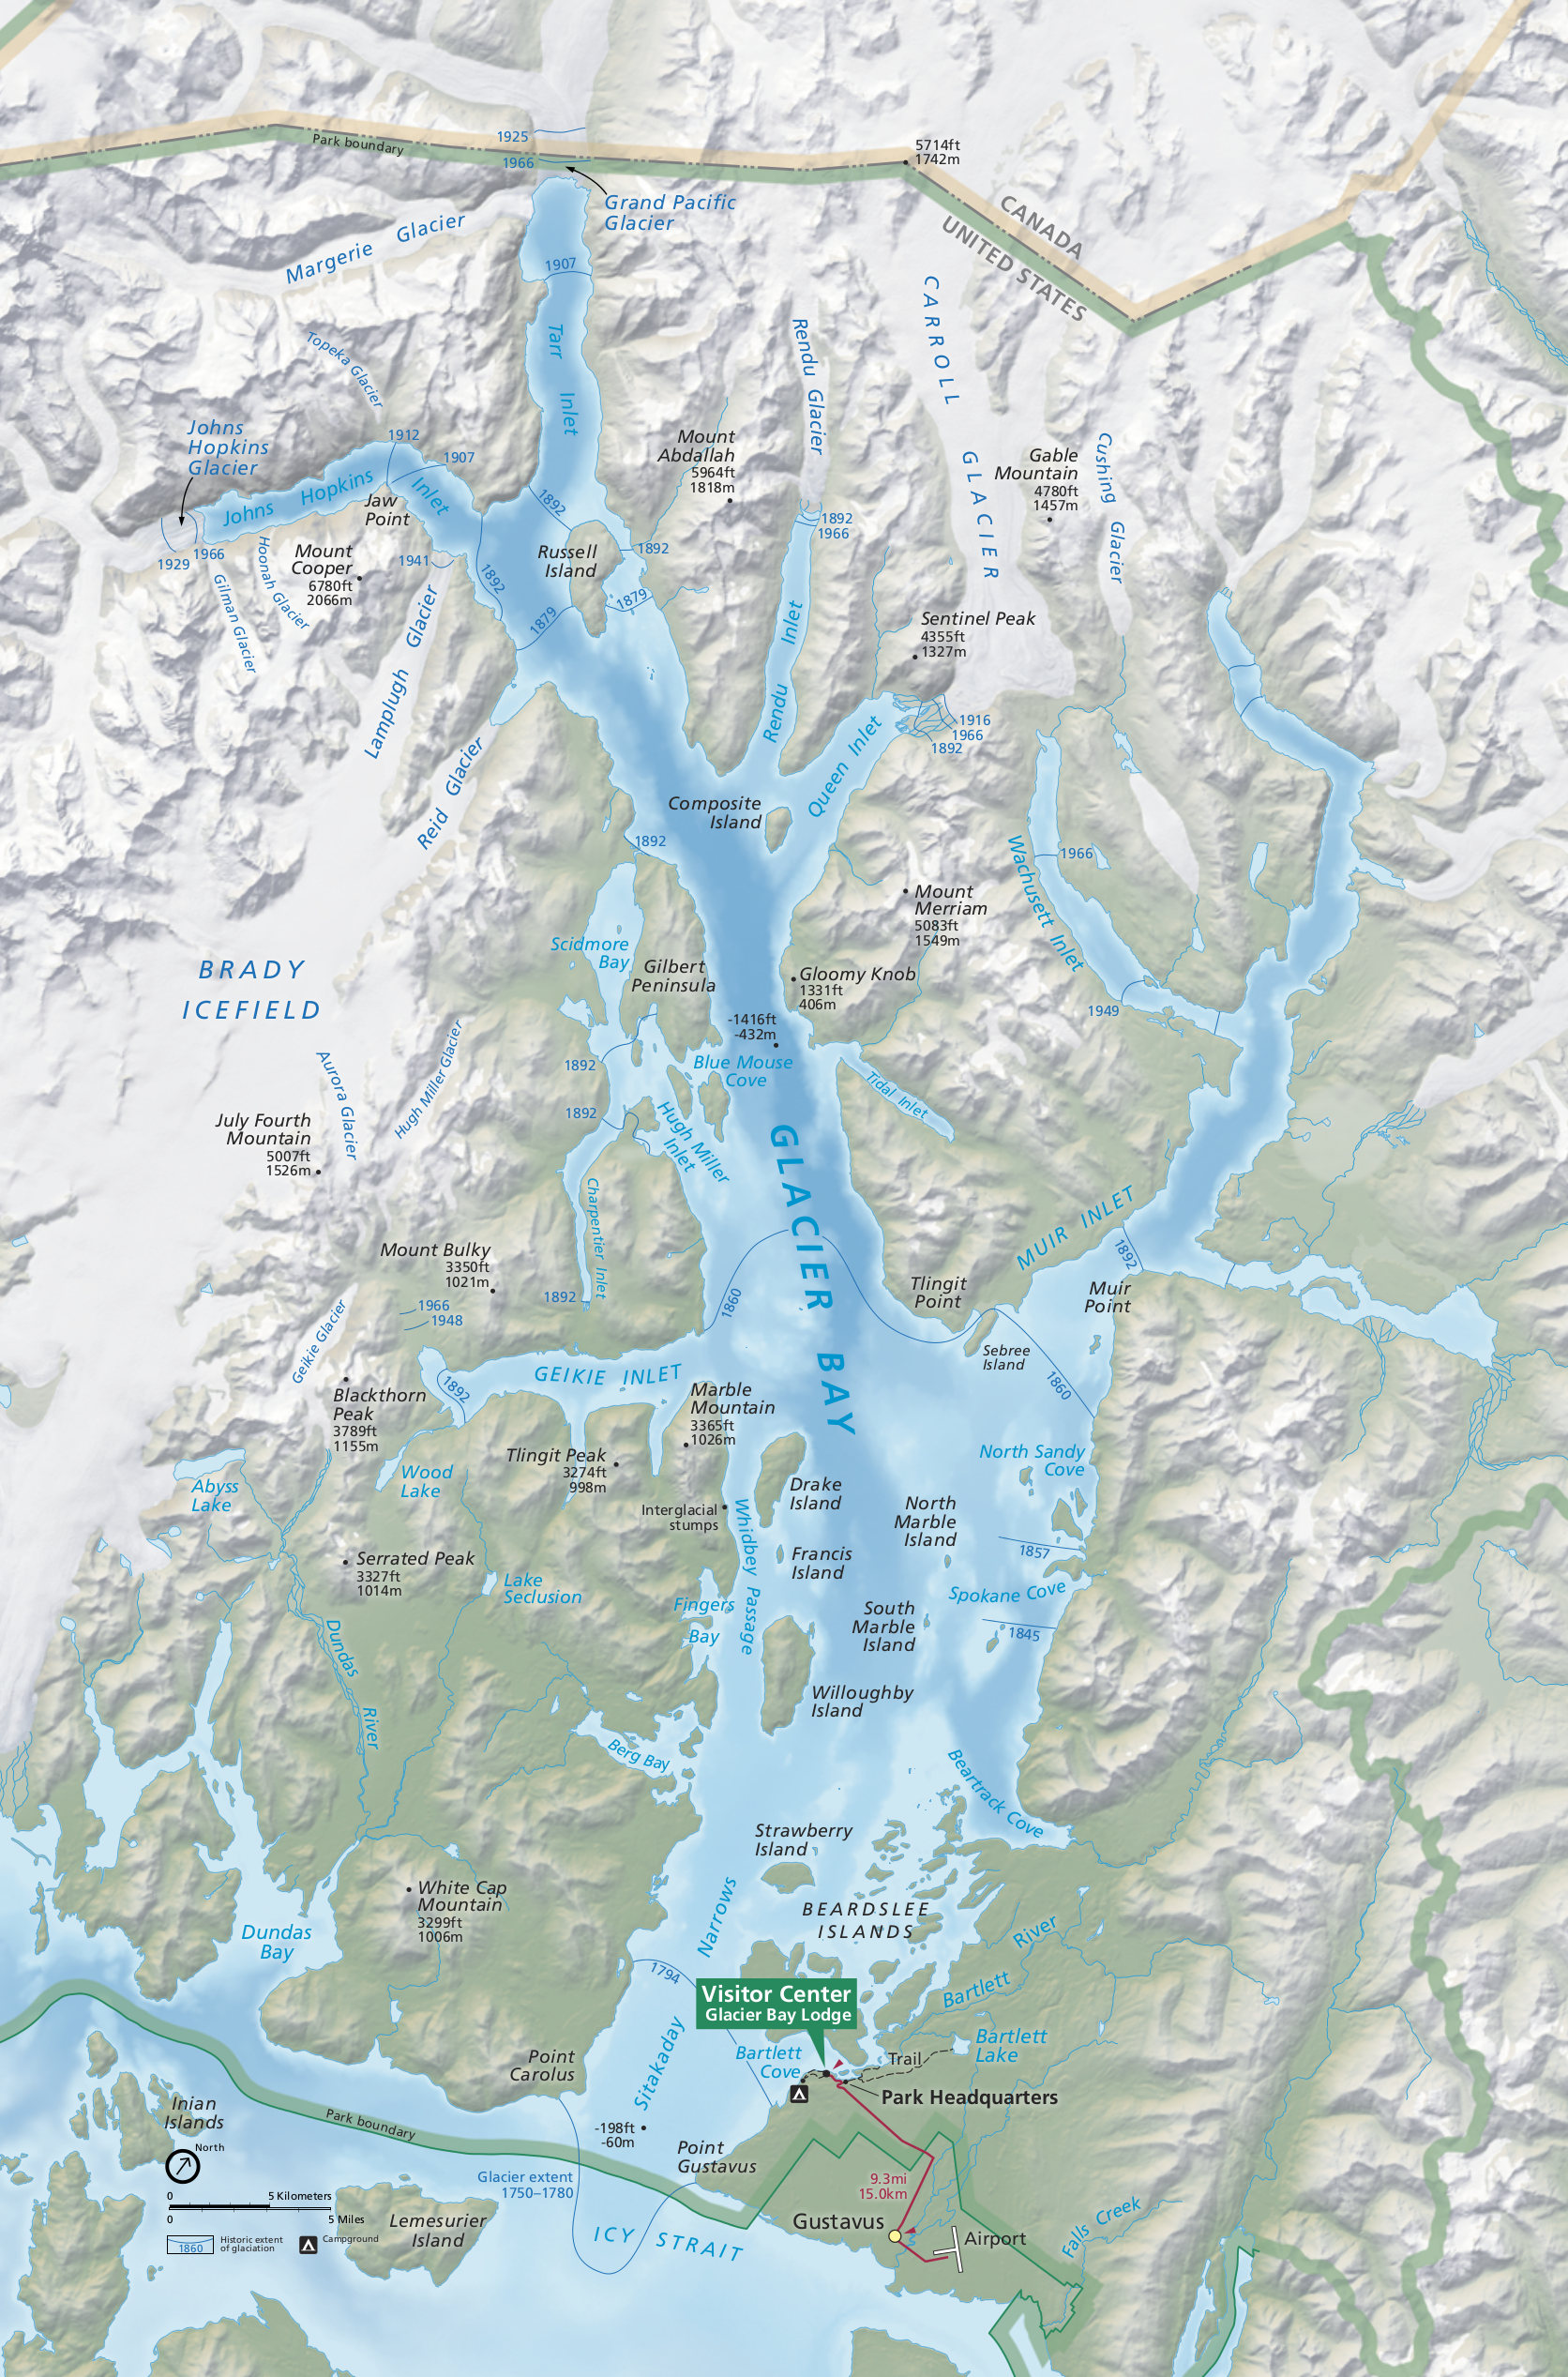 File:NPS glacier-bay-detail-map.jpg - Wikimedia Commons